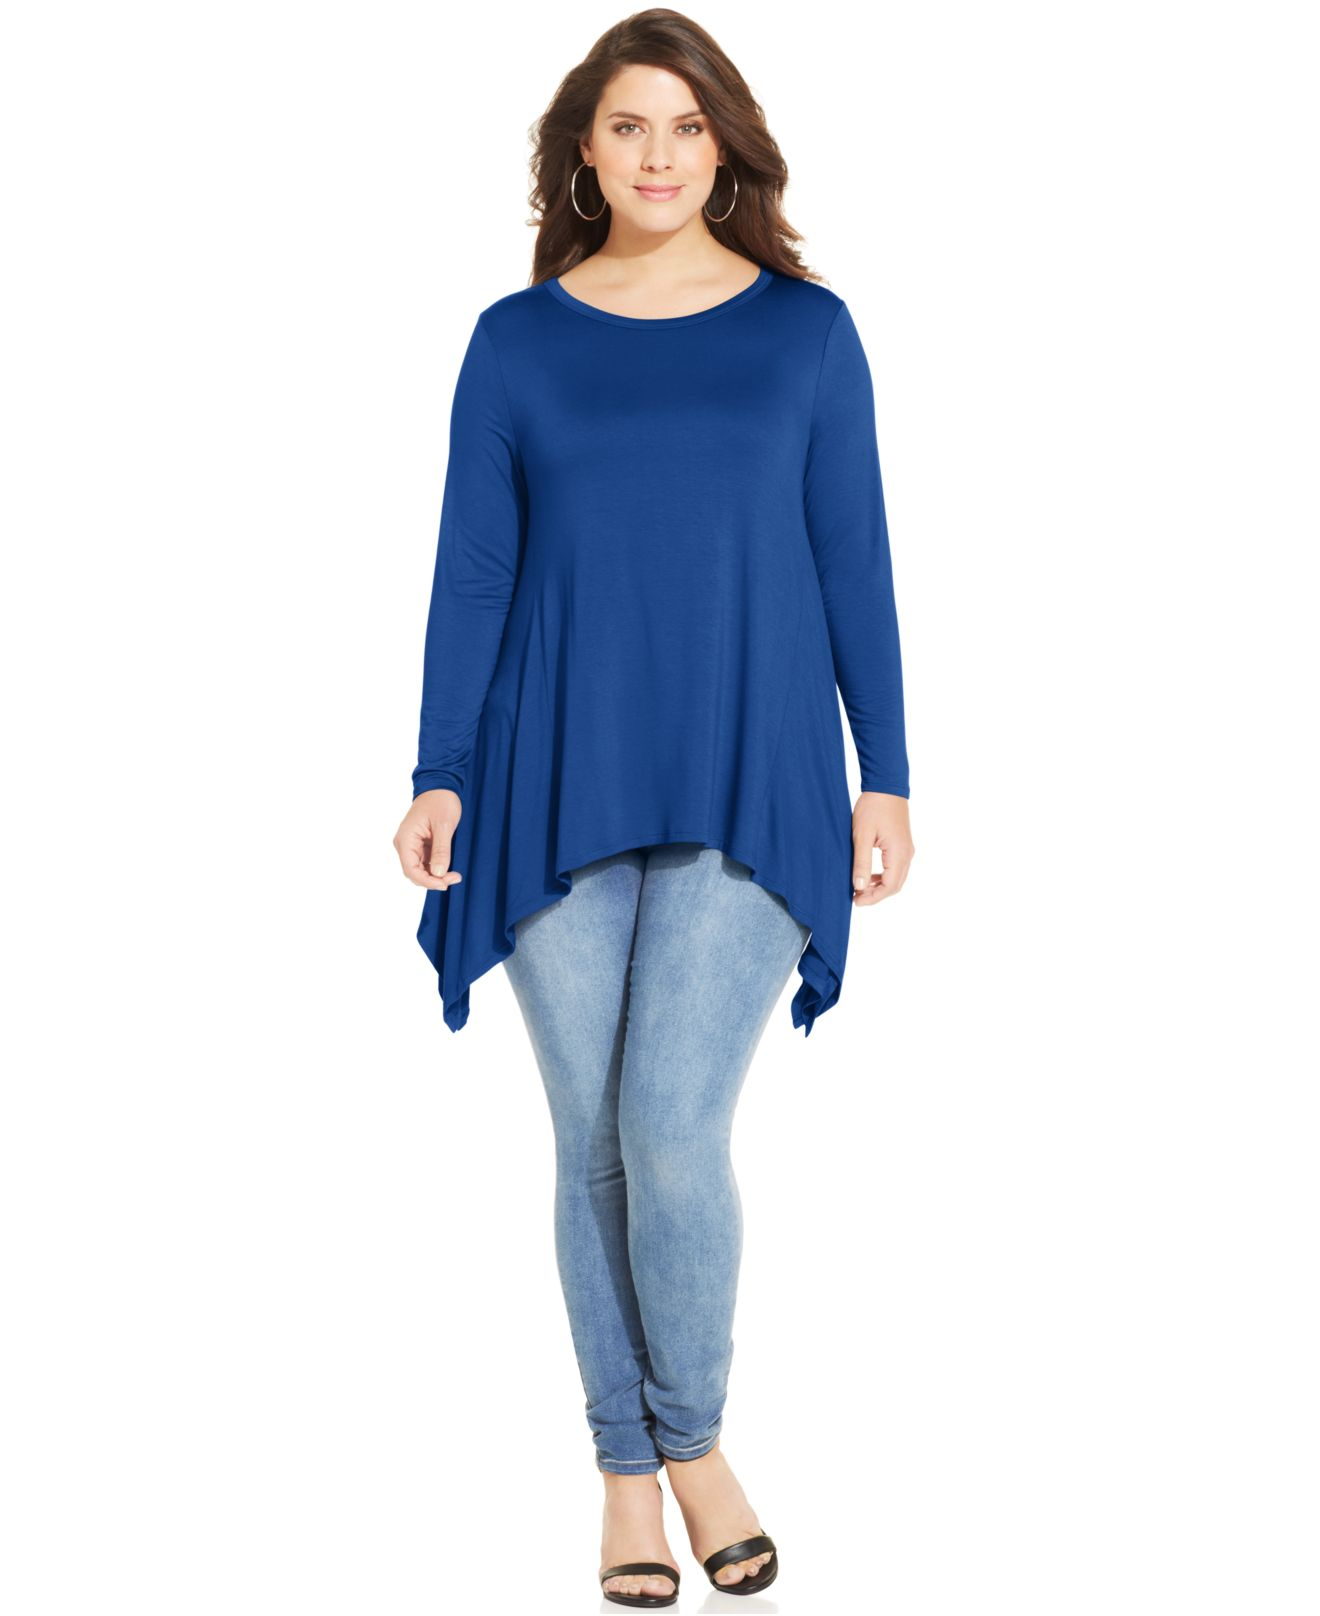 Soprano Plus Size Handkerchief Hem Top In Blue Snorkal